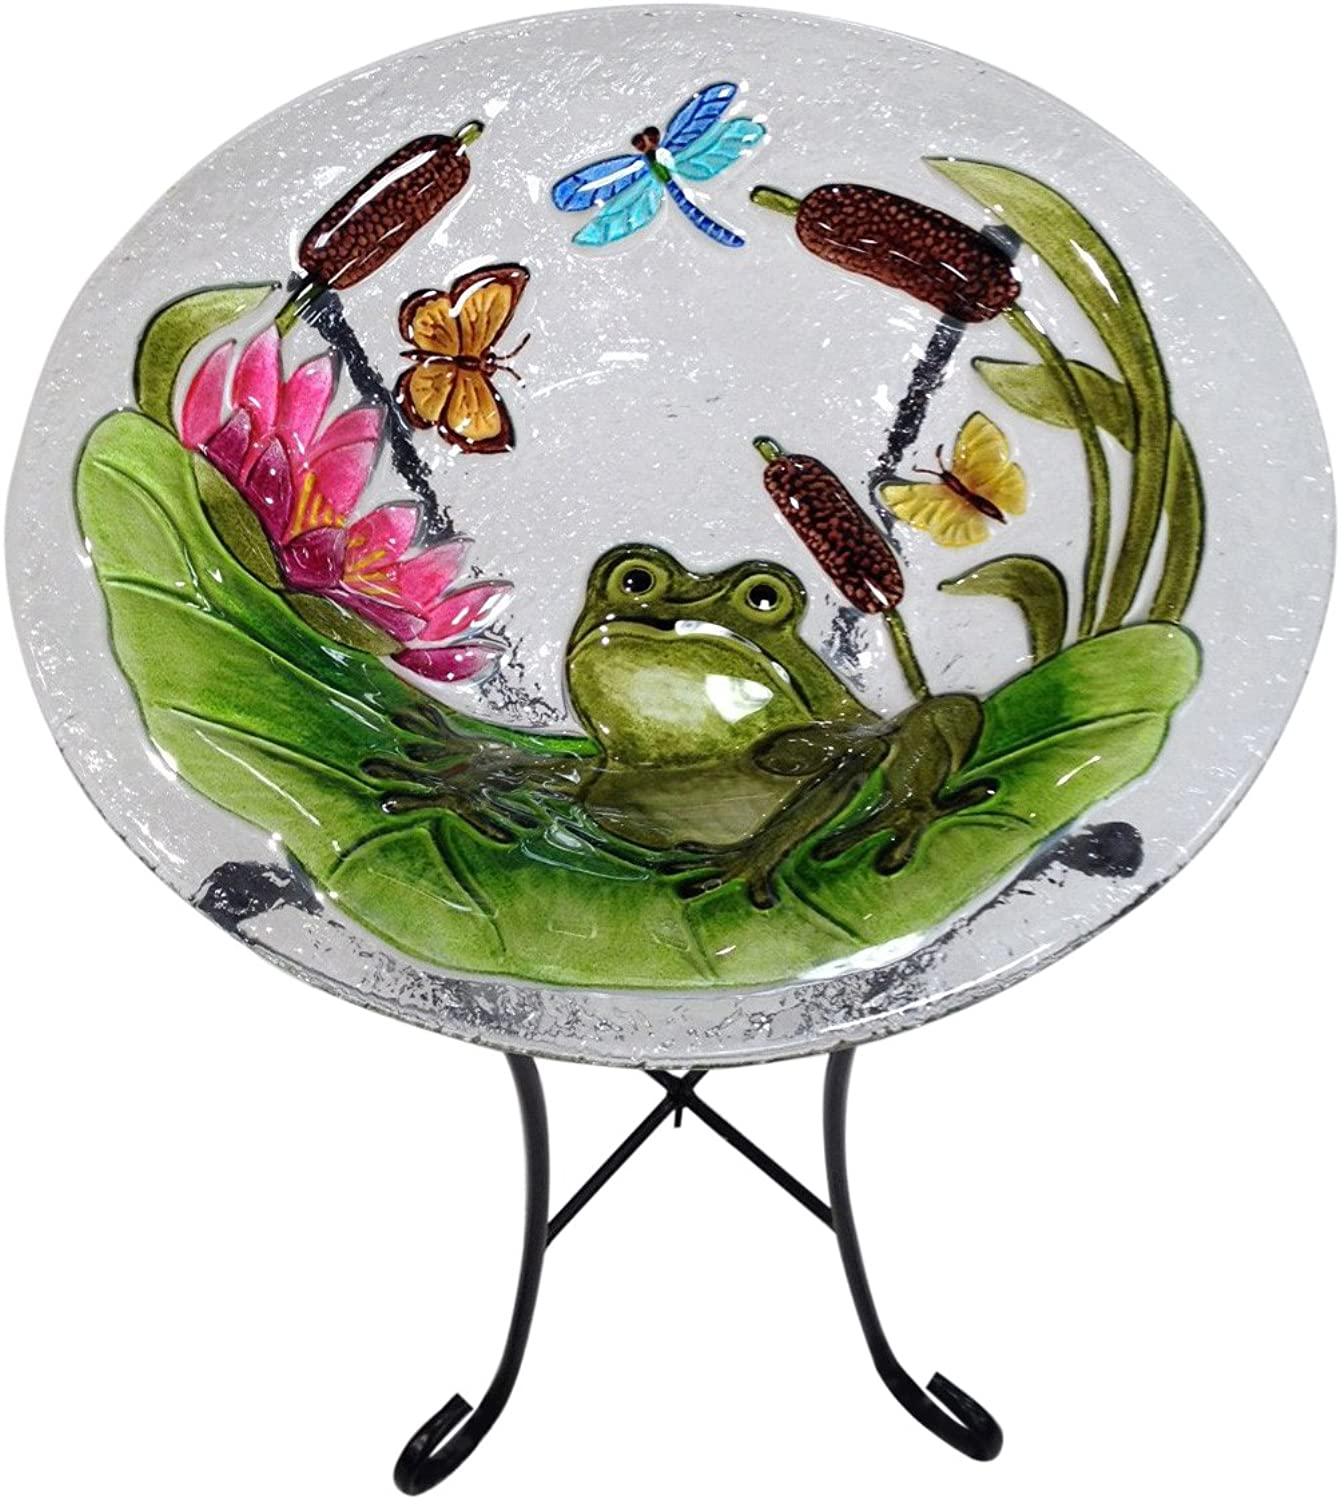 Continental Art Center CAC2221491 Bird Bath Glass Bowl, 13 by 2Inch, Frog